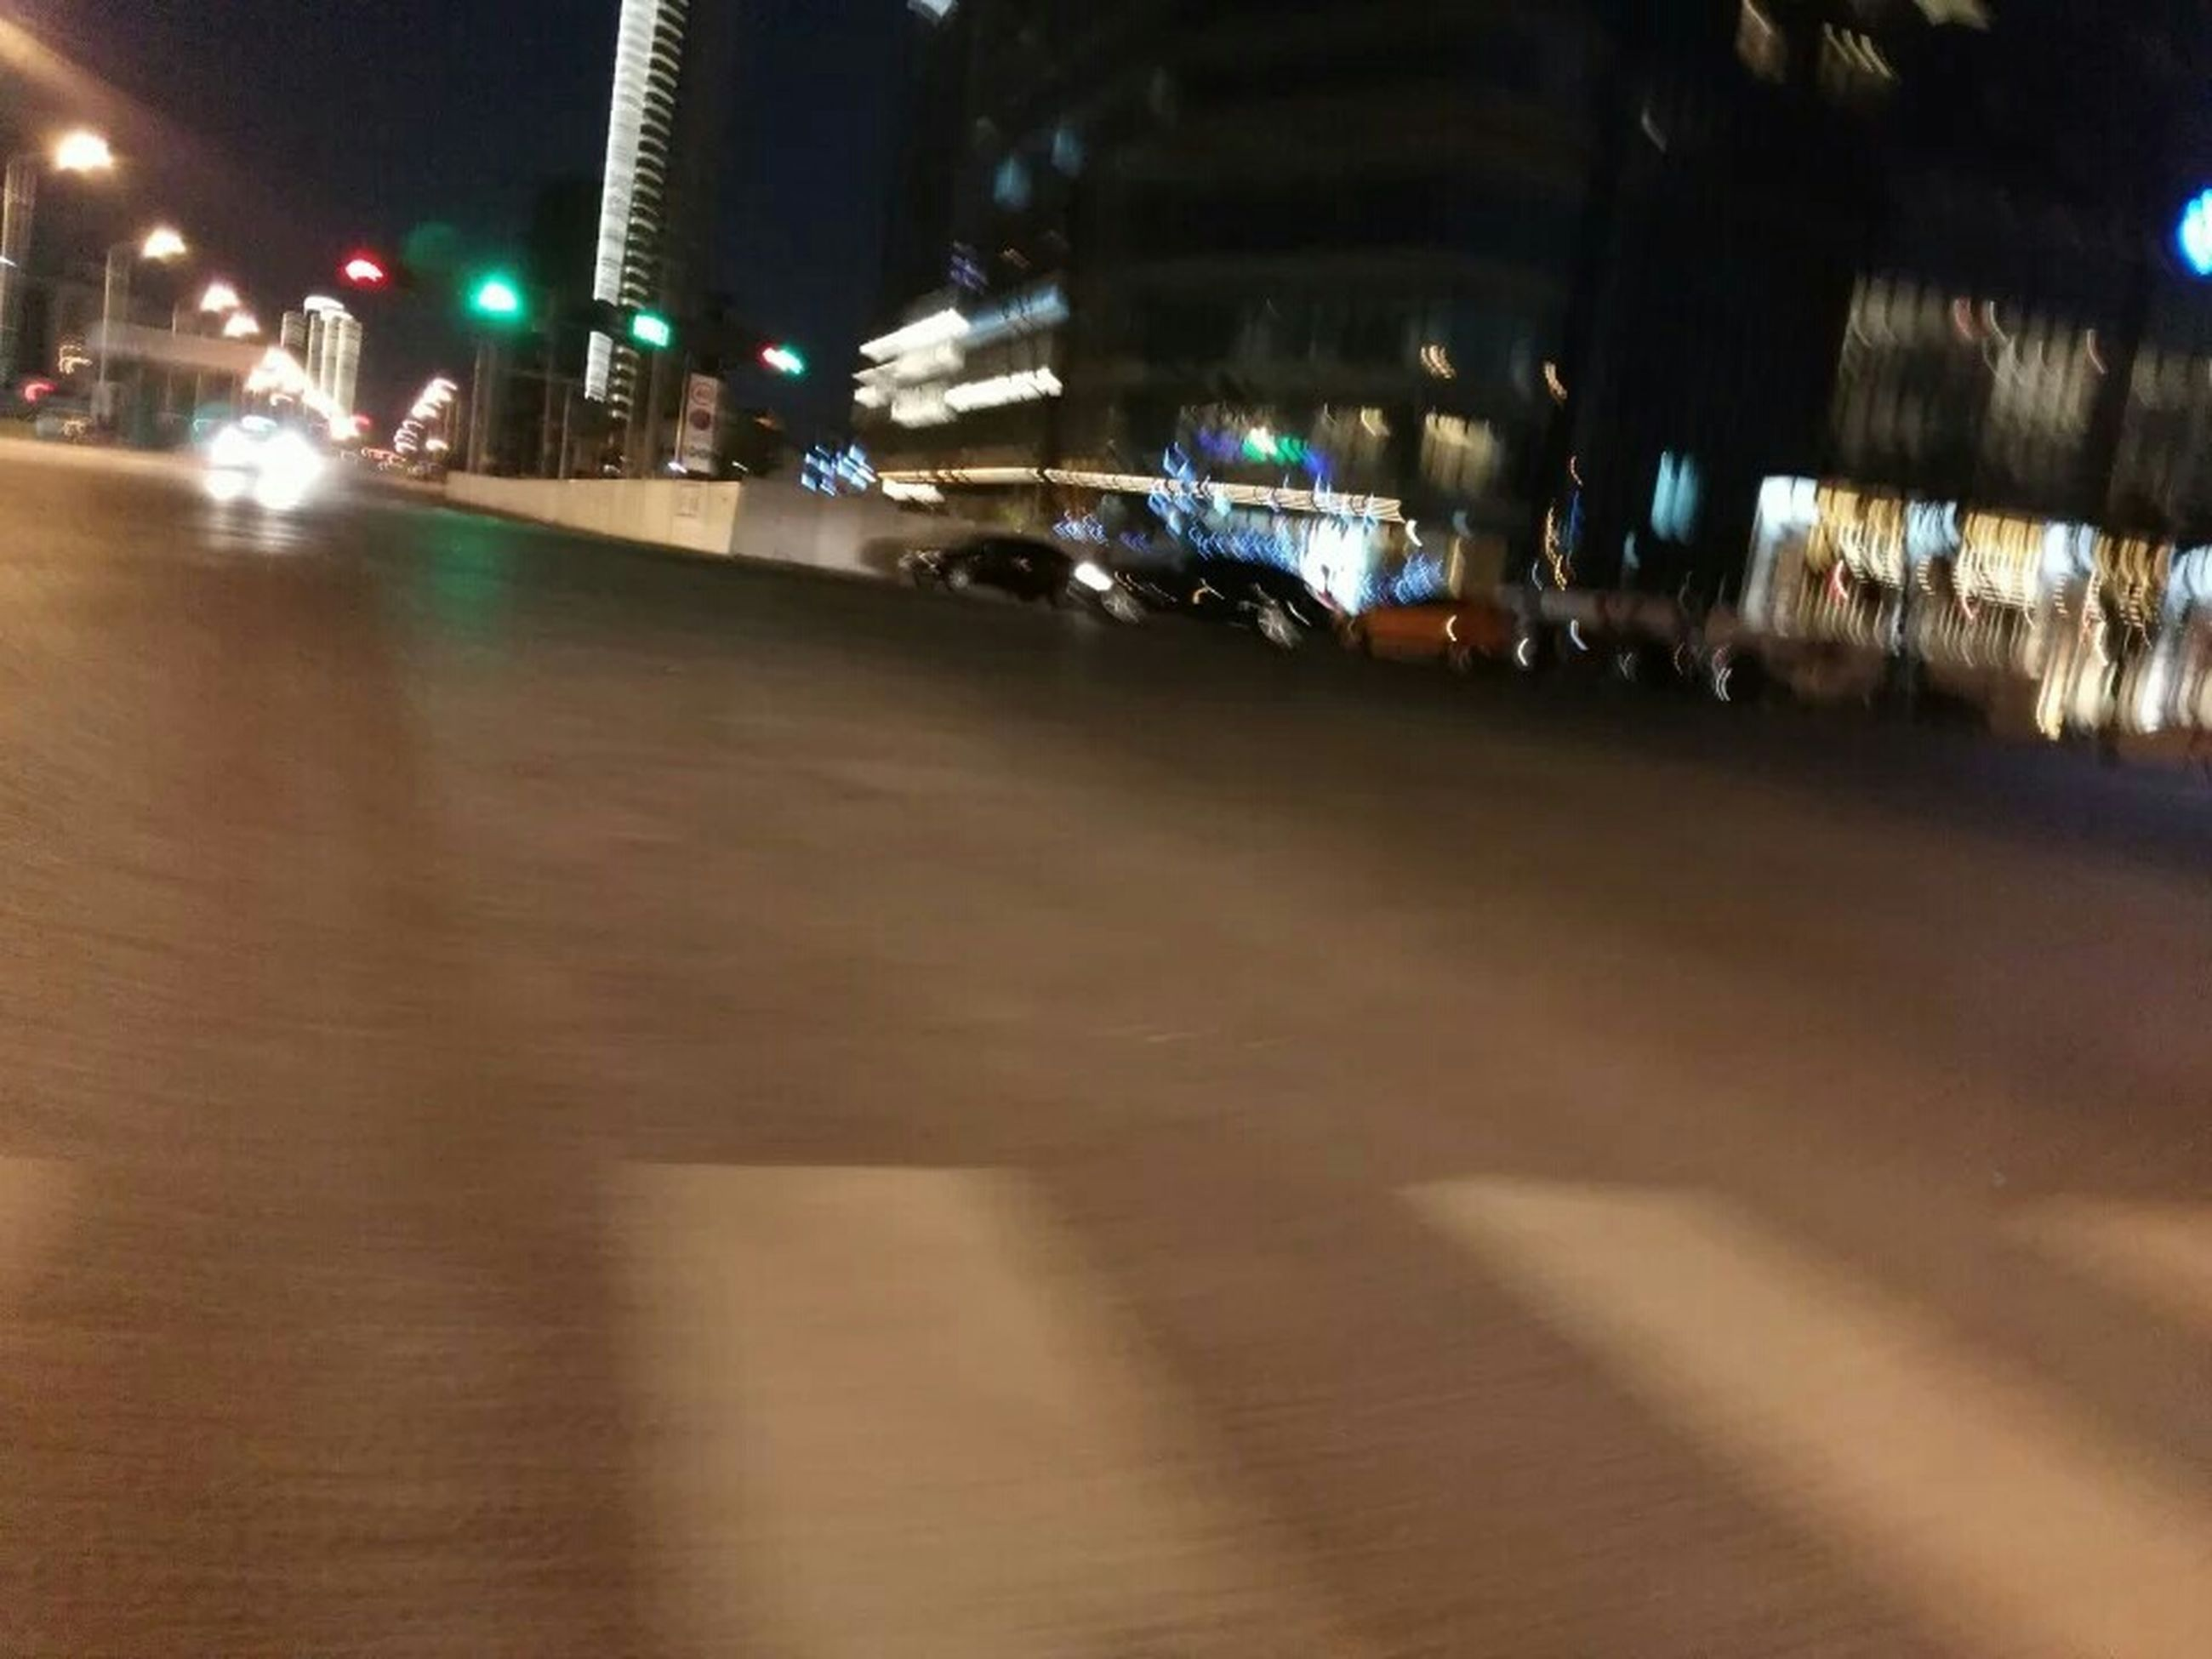 illuminated, night, transportation, city, mode of transport, street, building exterior, architecture, land vehicle, built structure, city life, car, city street, street light, road, incidental people, lighting equipment, traffic, on the move, travel